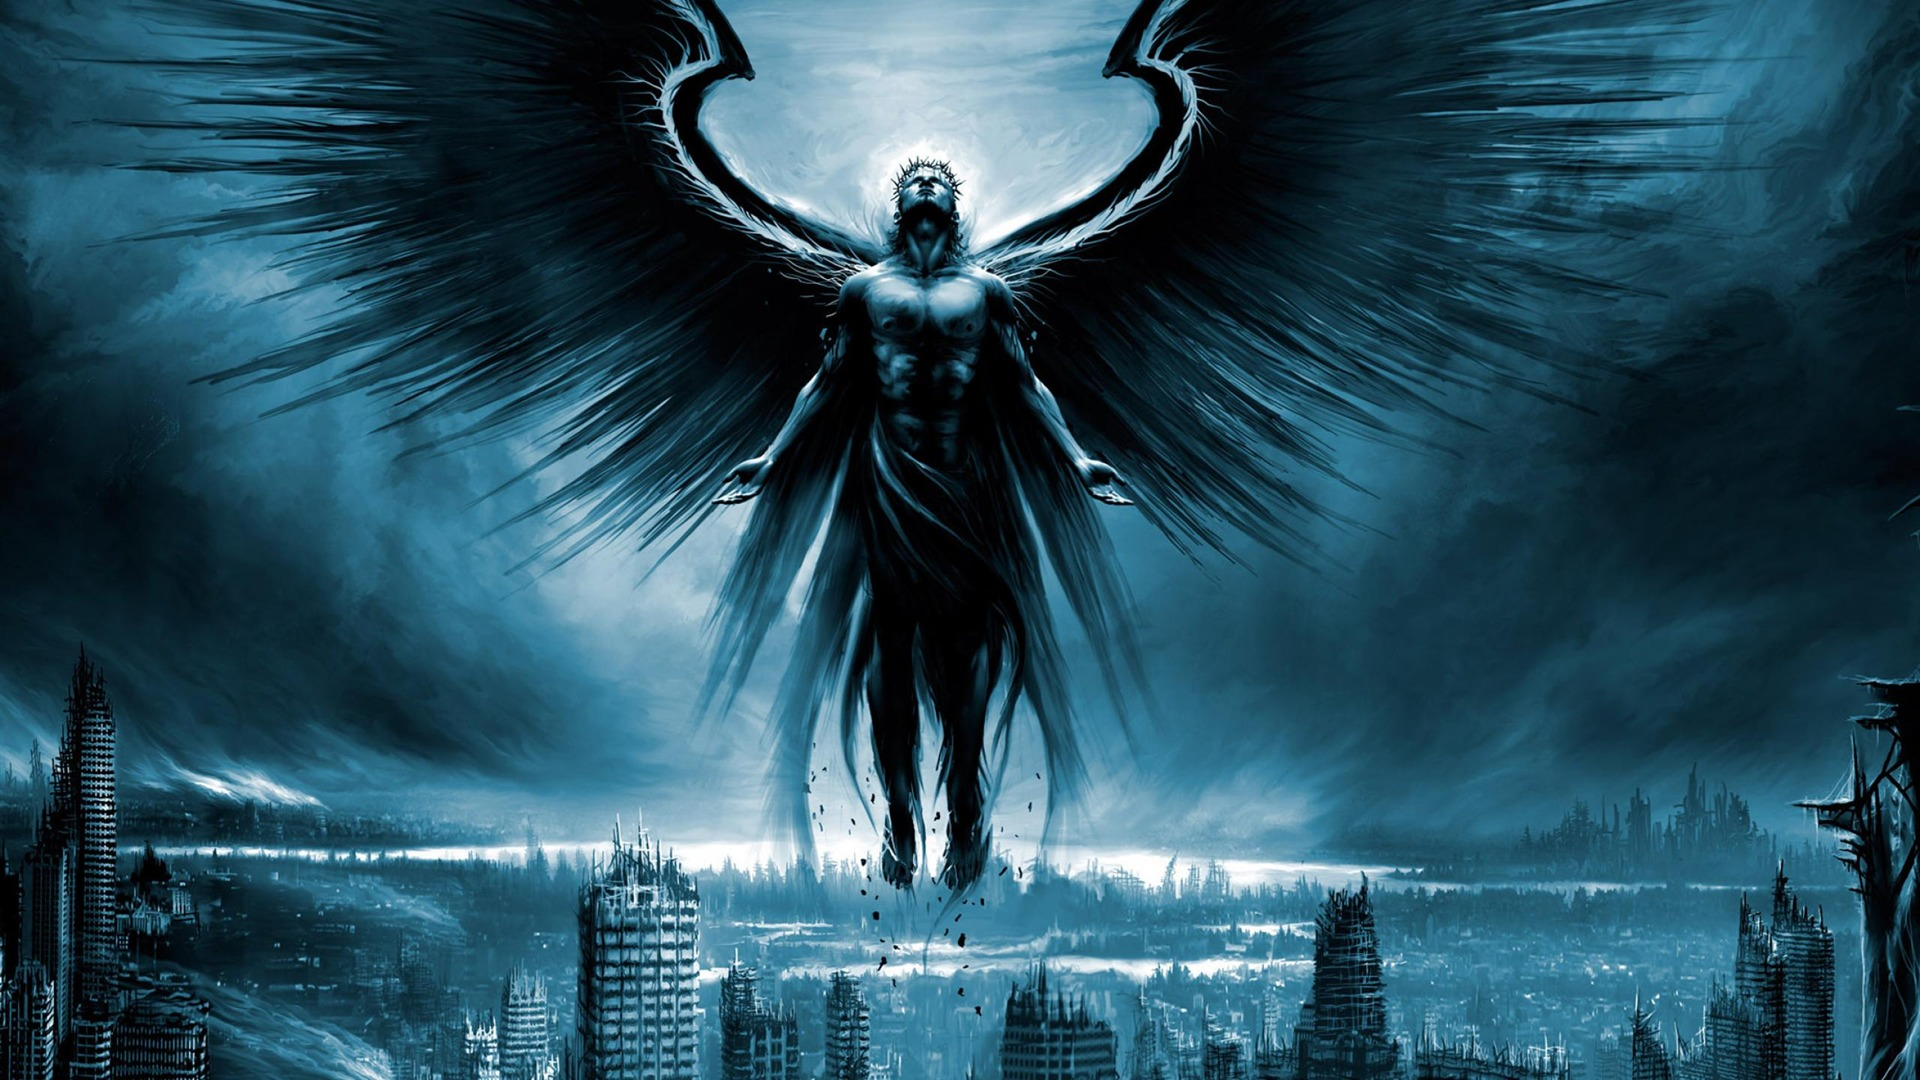 Dark Angel High Quality Wallpaper Preview 10wallpaper Com